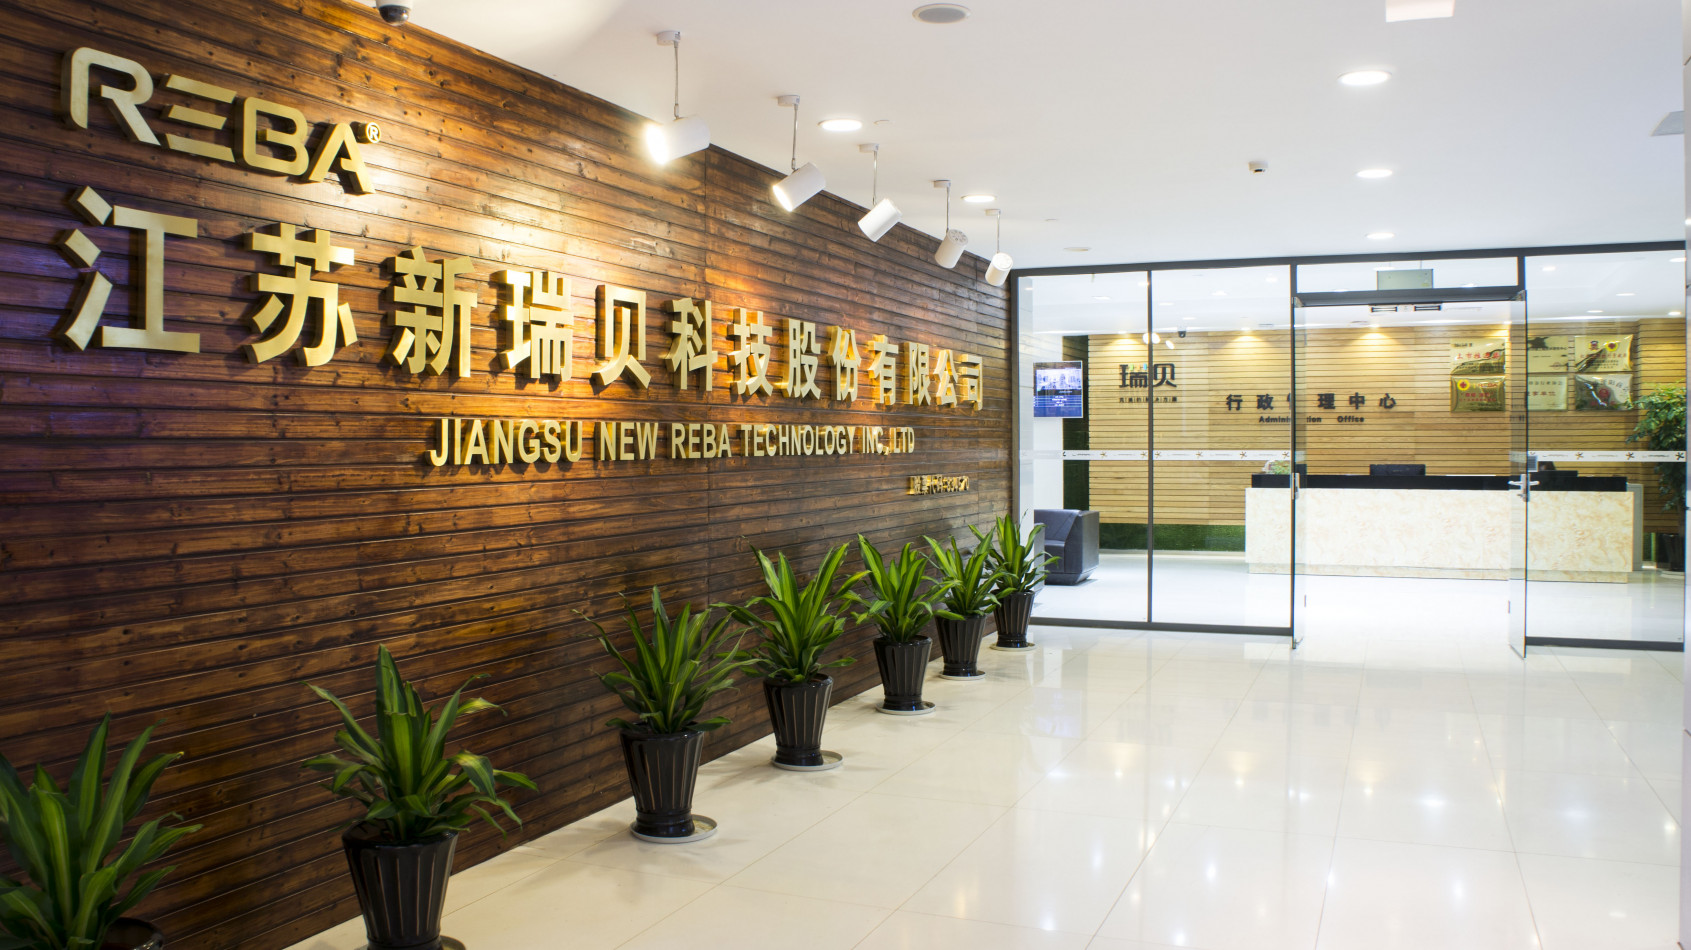 JIANGSU NEW REBA TECHNOLOGY INC